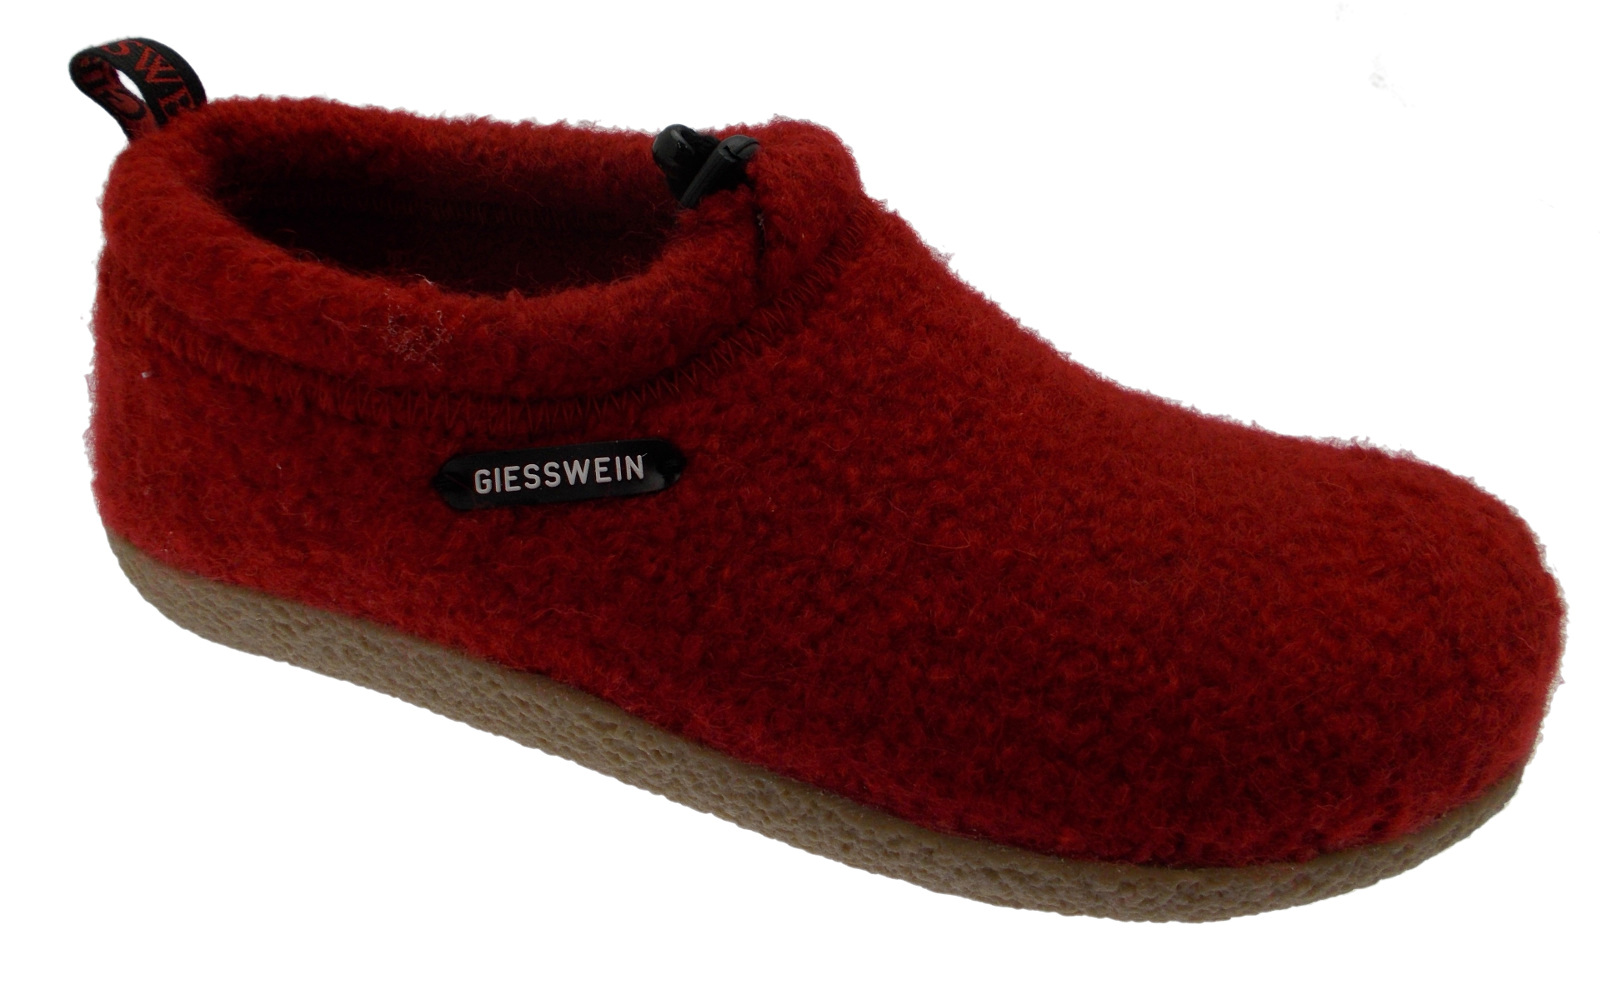 52 10 47849 017 VENT unisex slipper red removable foot cloth Giesswein